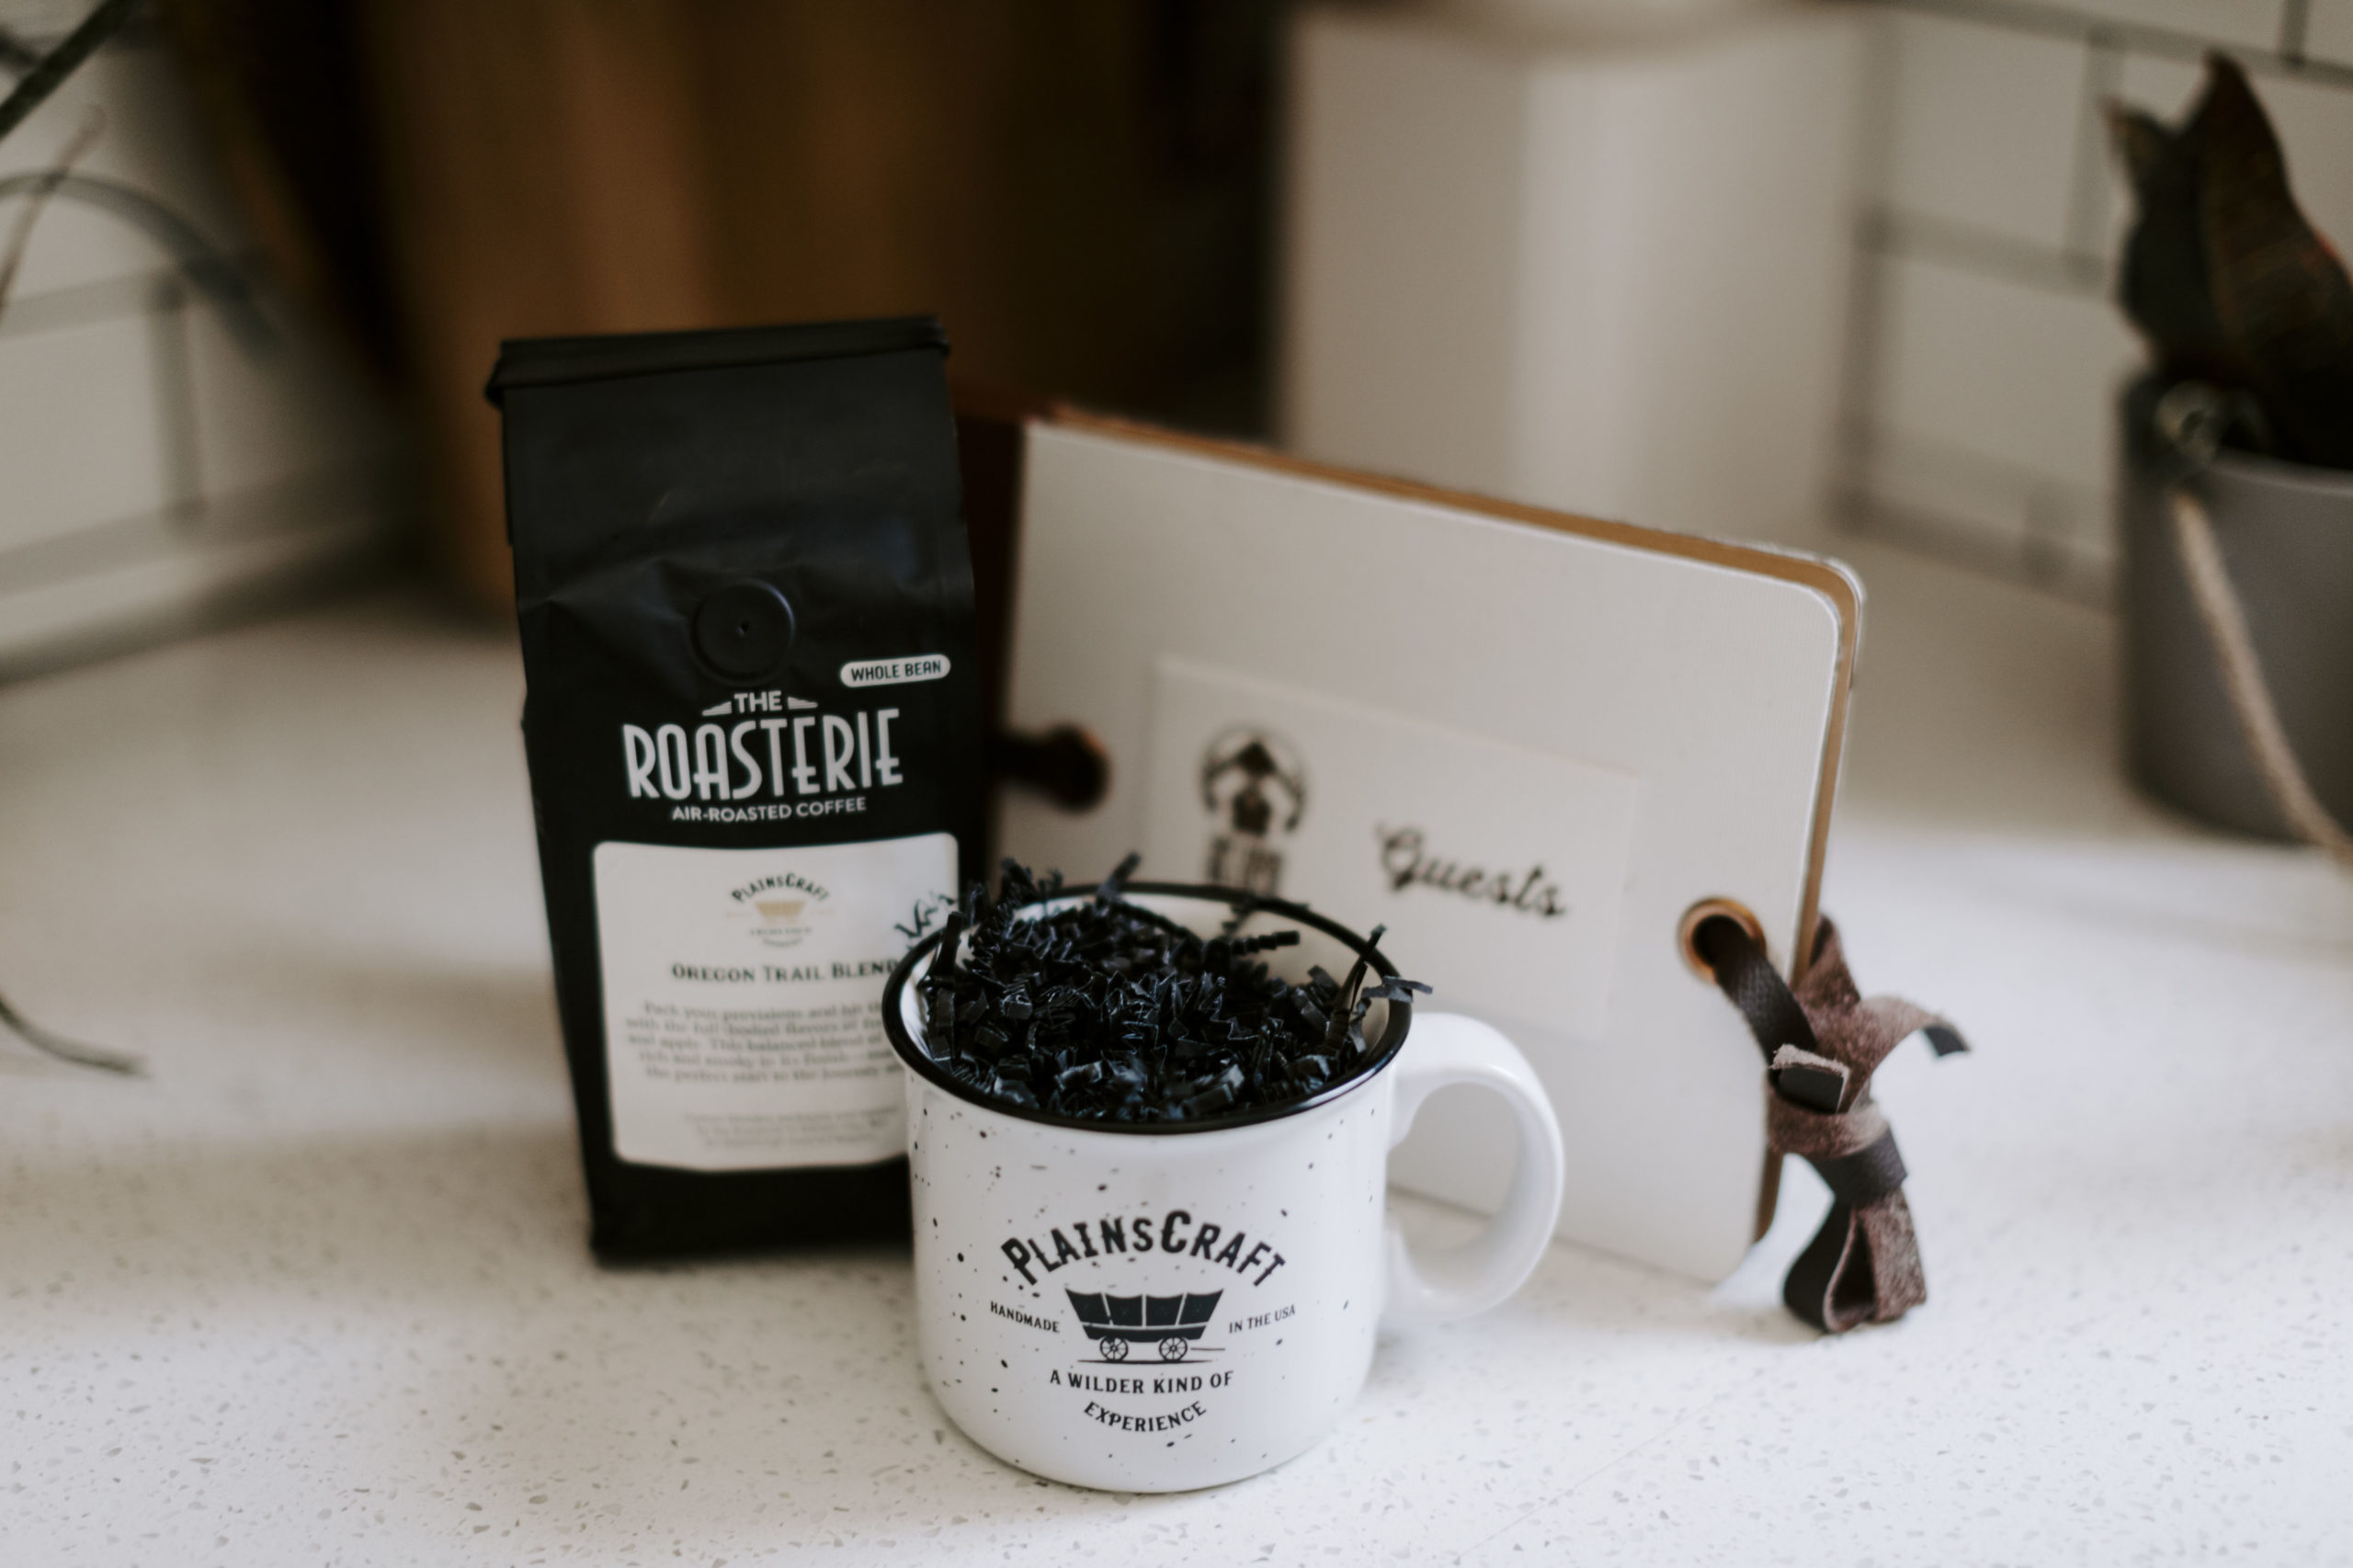 PlainsCraft customer gifts, including coffee, a camping mug, and a guest book